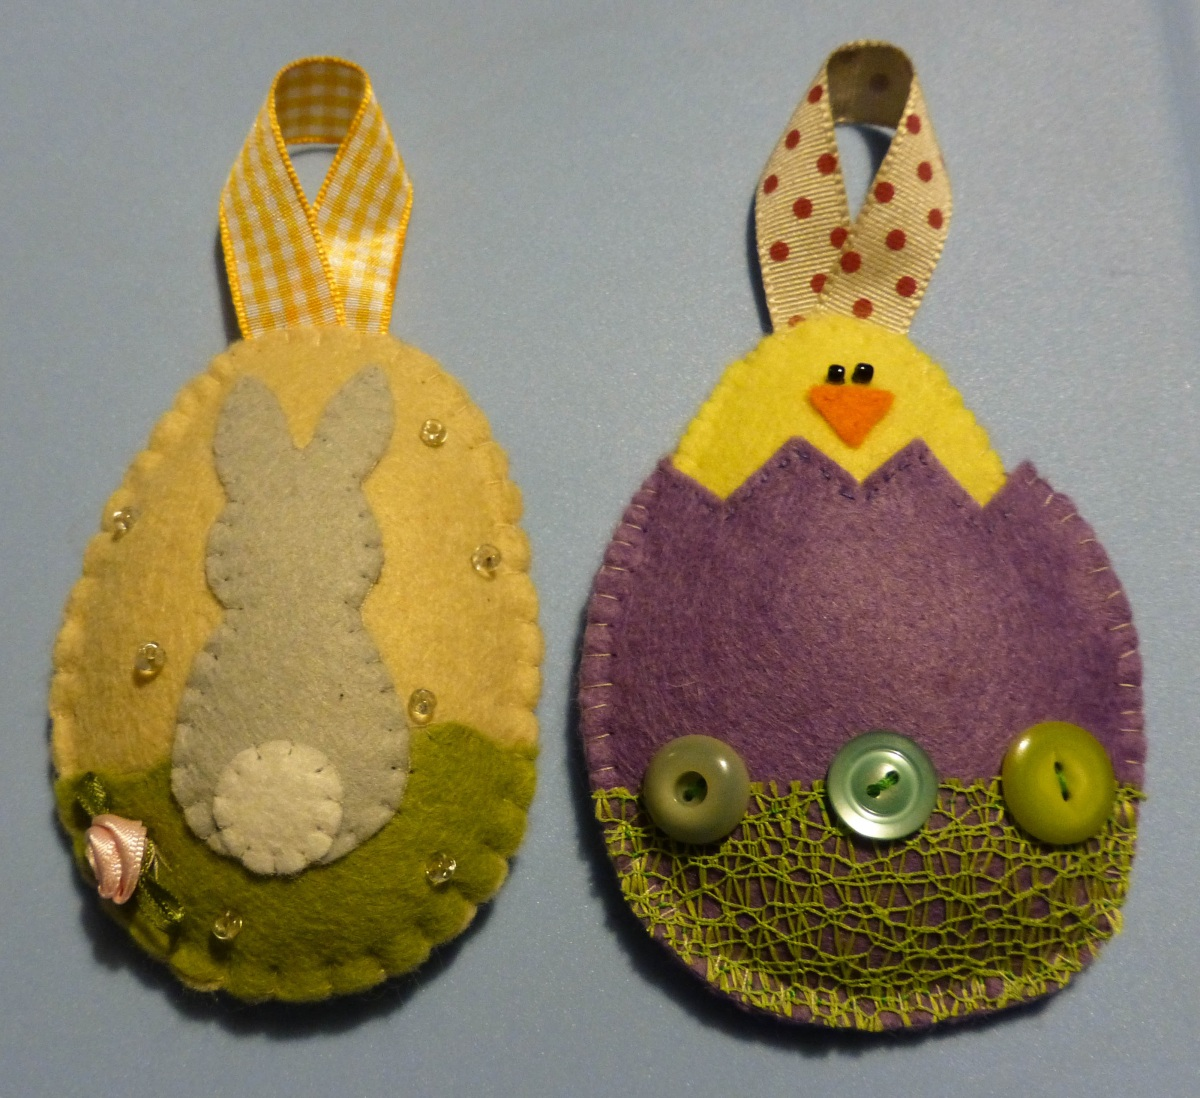 Photo of the two Easter felt hanging decorations together